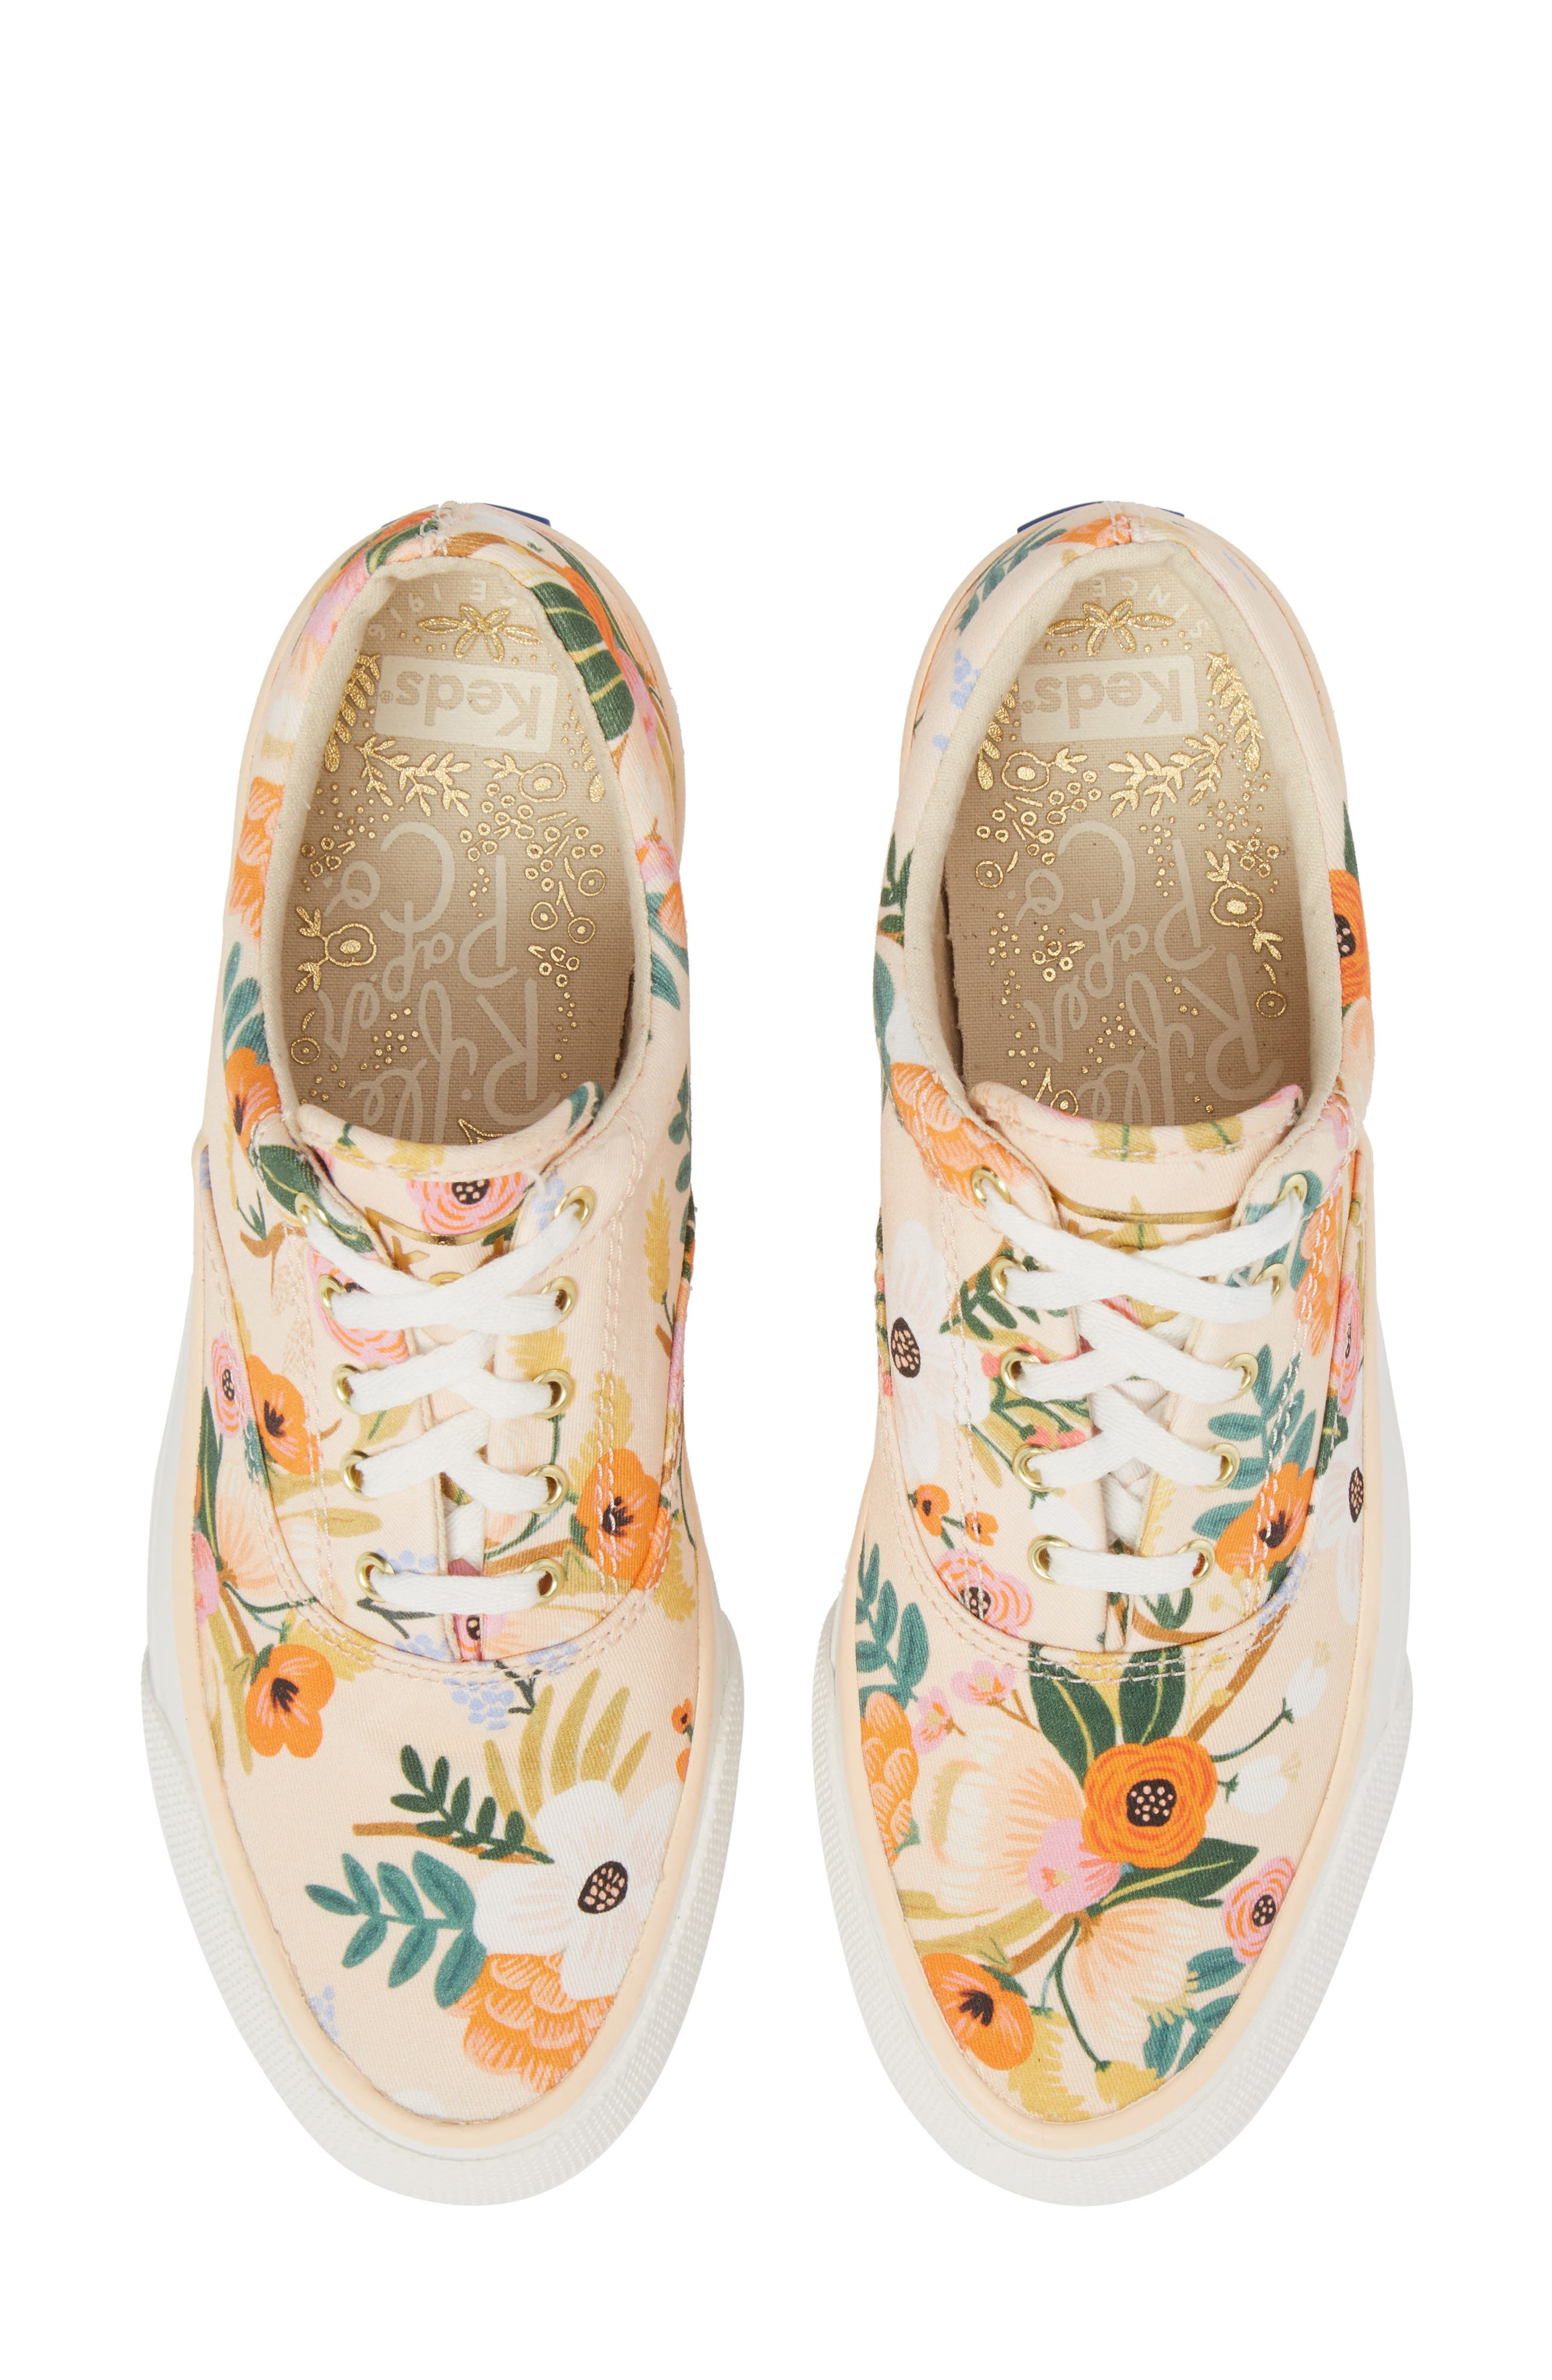 x Rifle Paper Co. Anchor Lively Floral Slip-On Sneaker,                             Main thumbnail 1, color,                             Pink